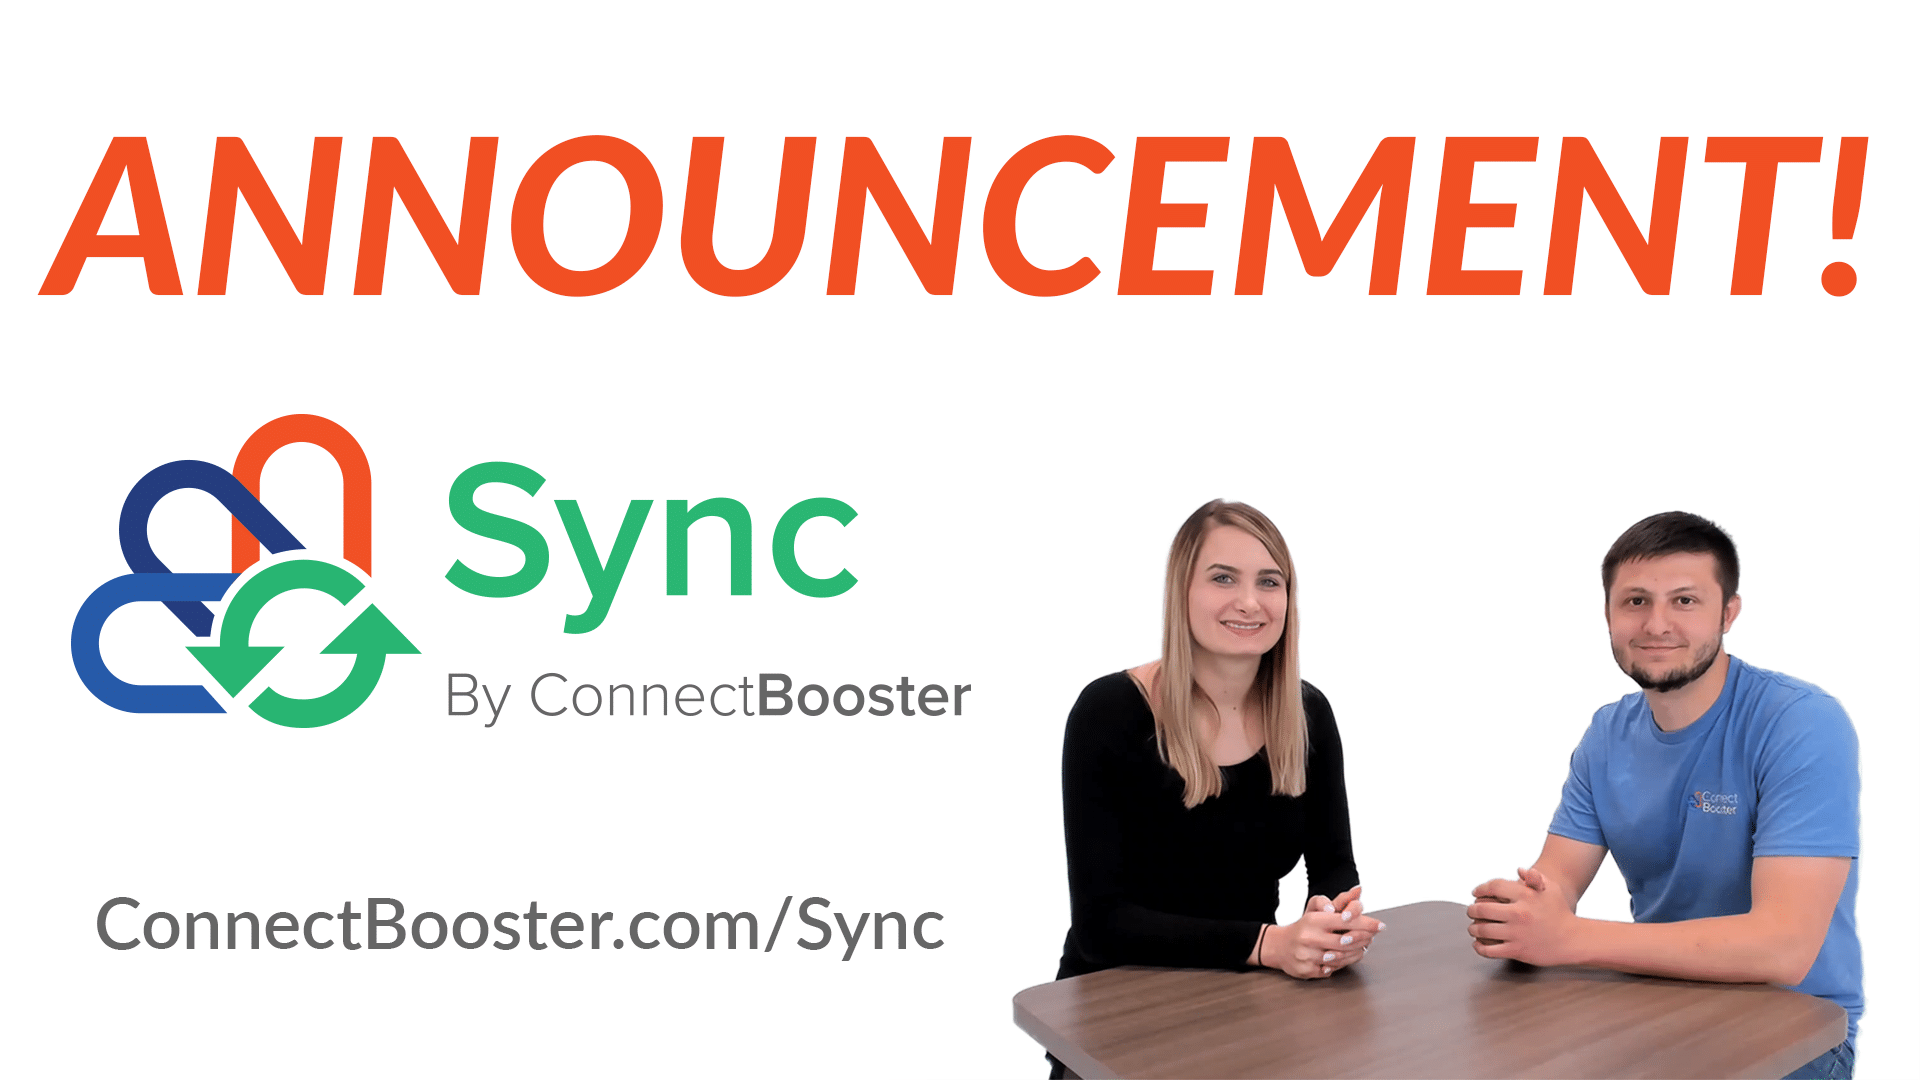 Sync by ConnectBooster Announcement | Sync Invoices with One Click